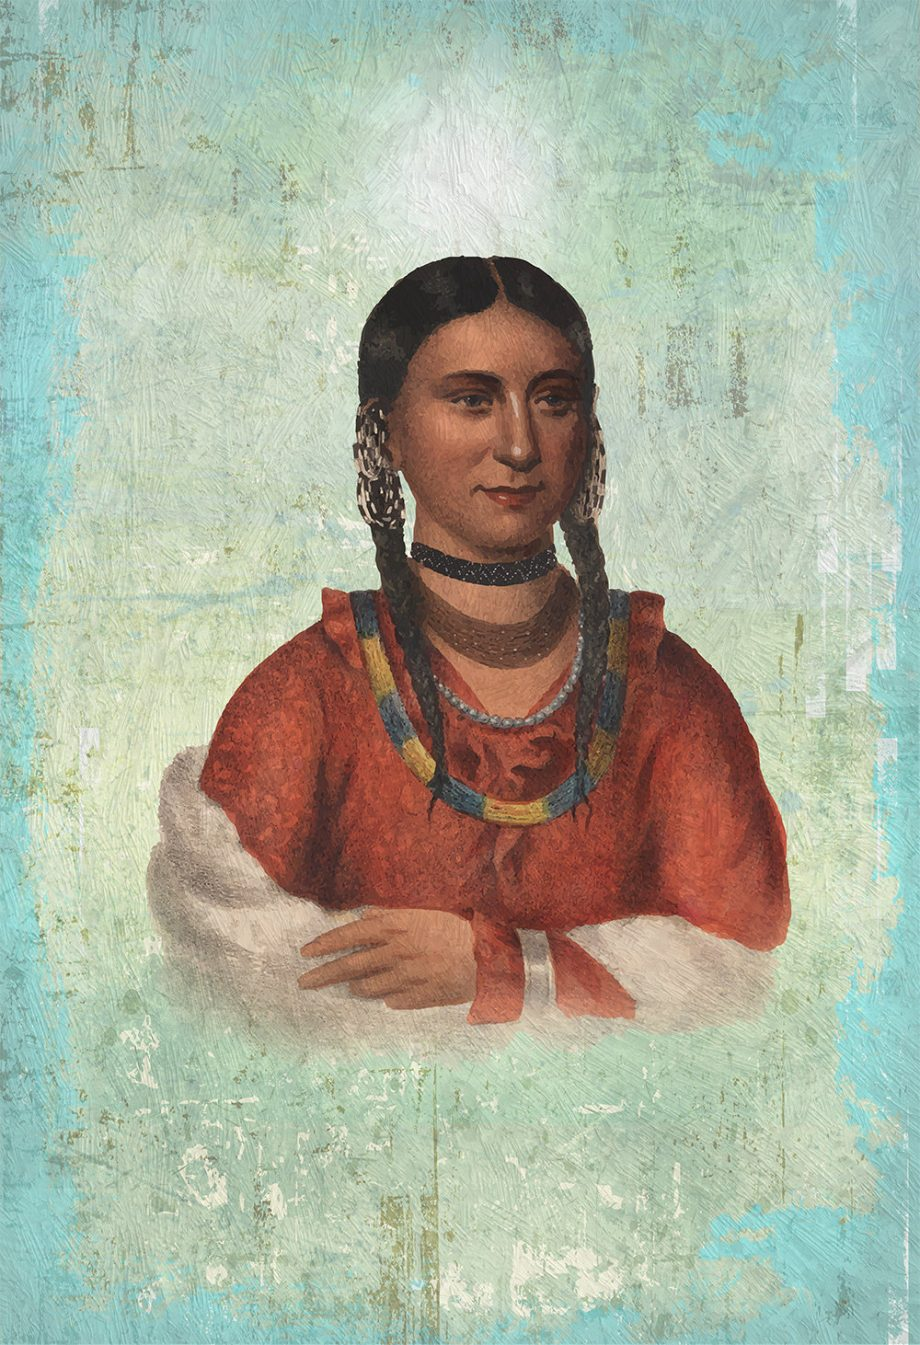 Vintage Native American Woman Illustration Art Print Vintage Giclee on Cotton Canvas and Satin Photo Paper